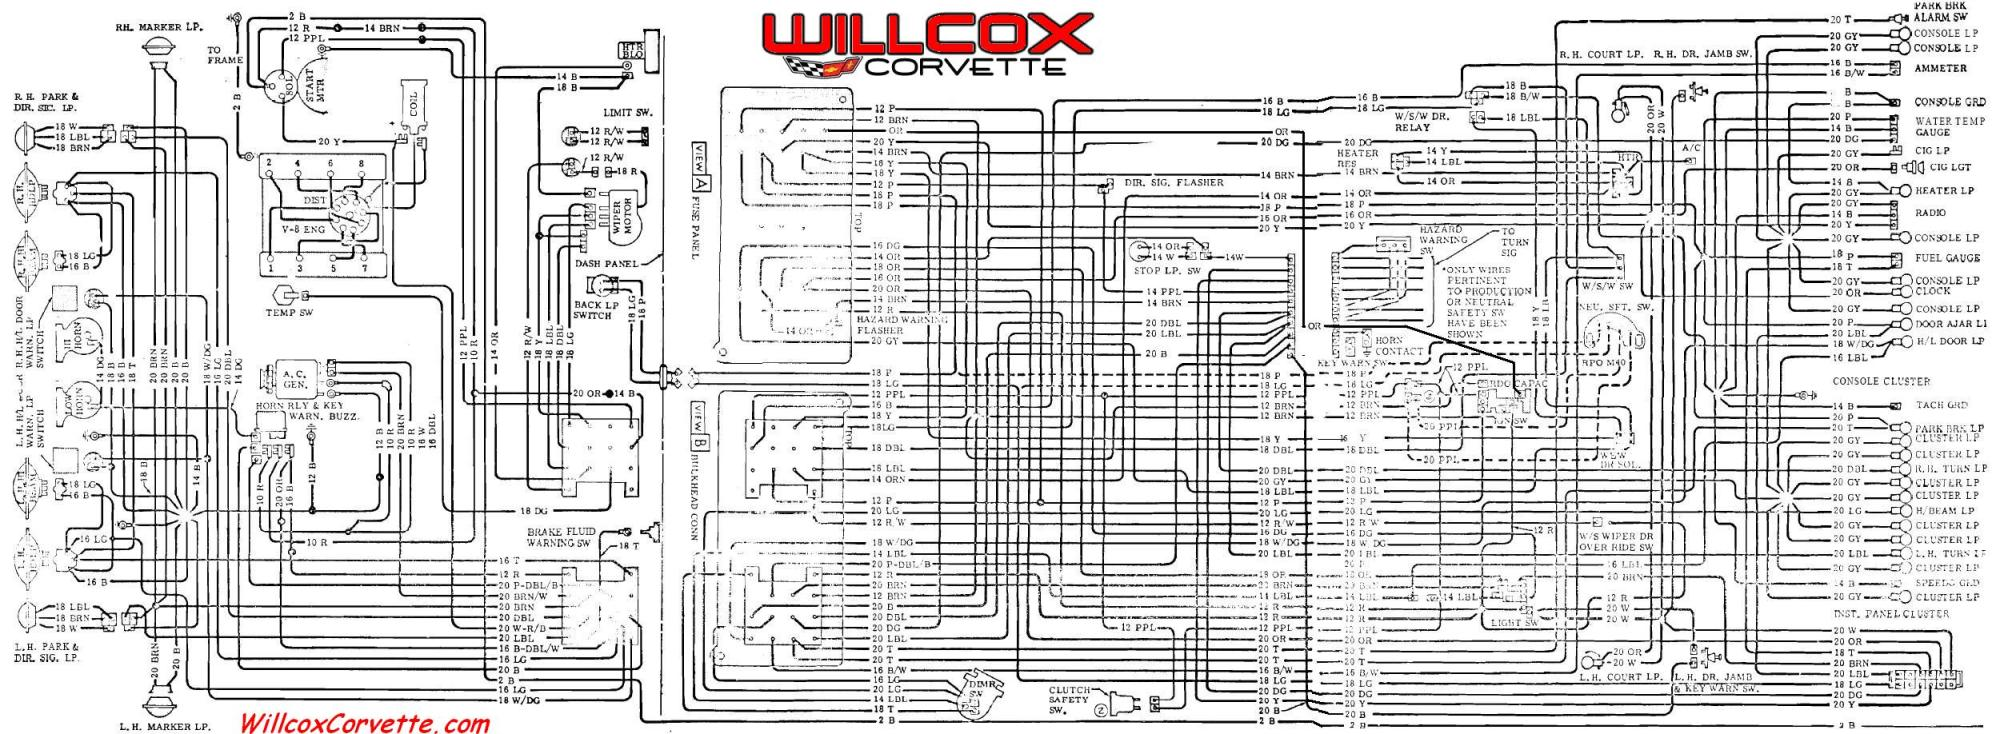 hight resolution of hight resolution of 1968 corvette wiring harness wiring diagrams one 1968 corvette wiring harness diagram